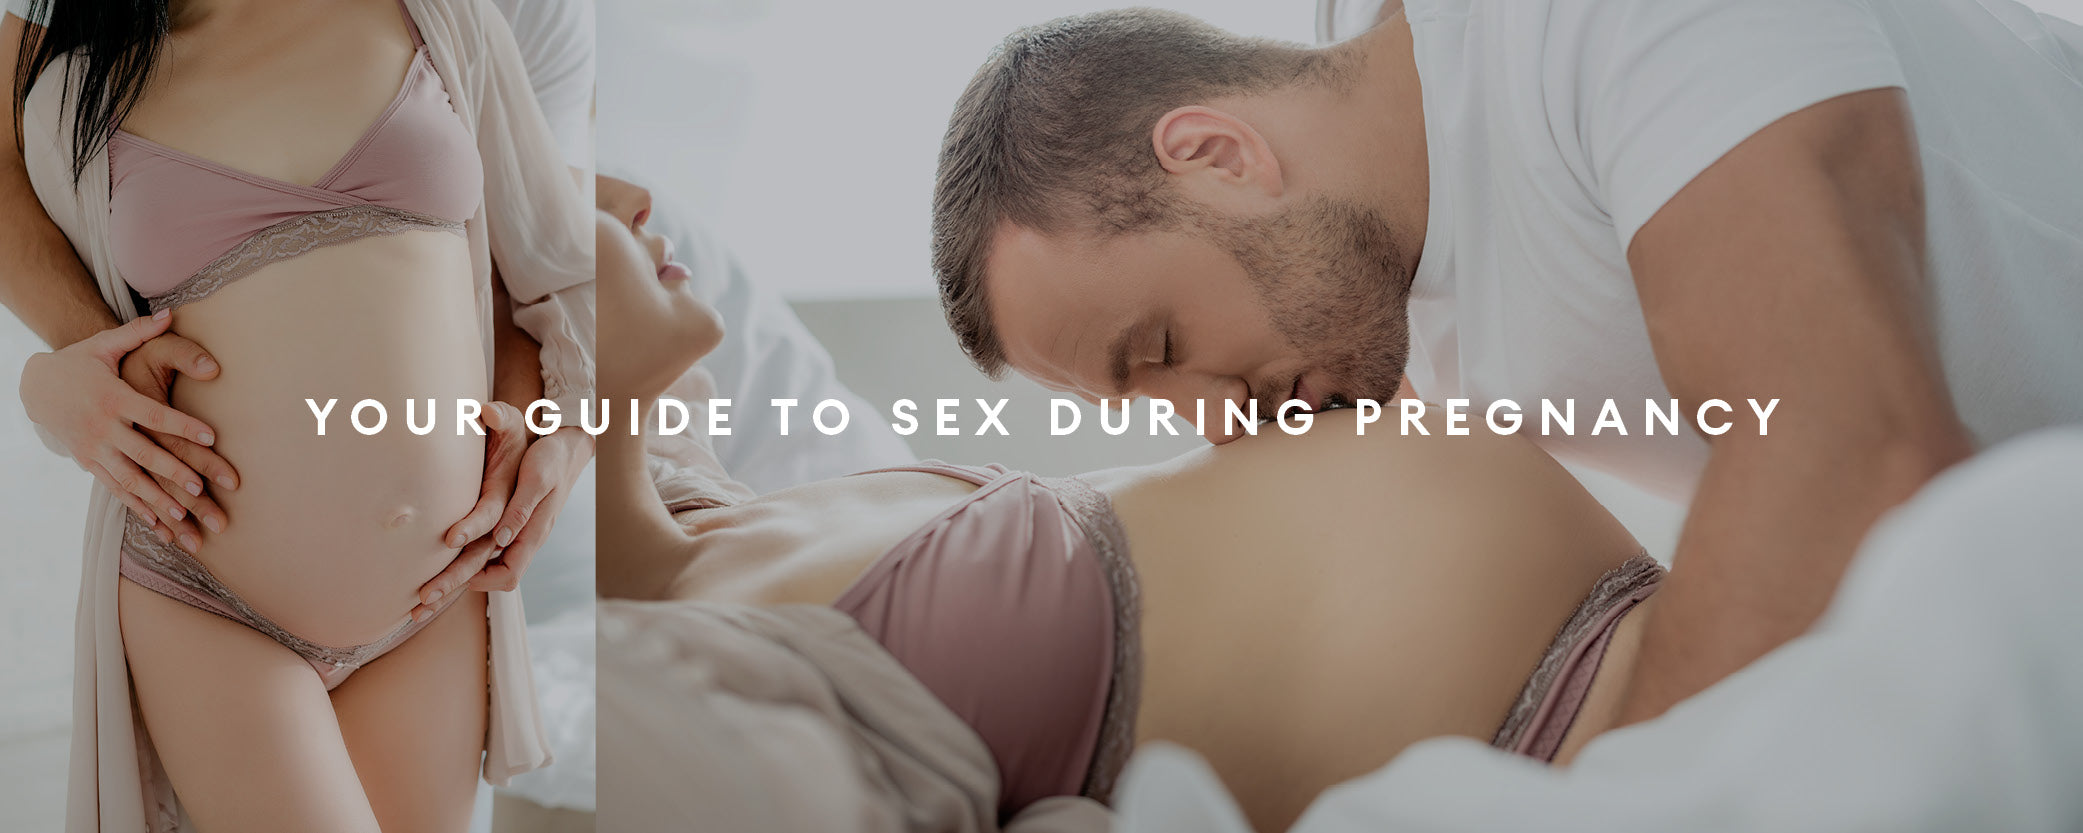 Your Guide to Sex During Pregnancy